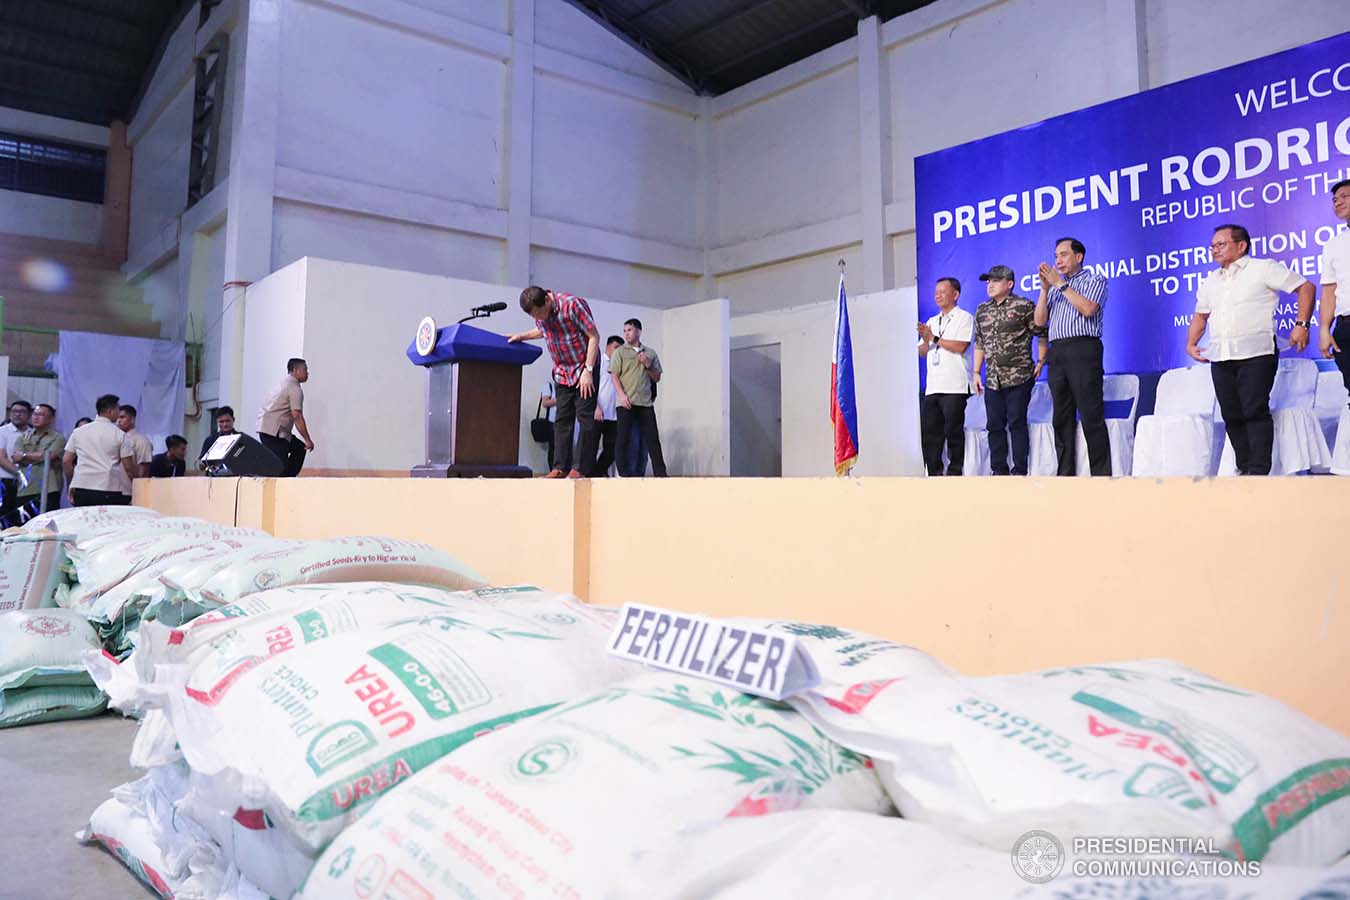 """President Rodrigo Roa Duterte takes a bow after delivering a speech during the ceremonial distribution of agricultural assistance to the farmers of Region 12 at the Pigcawayan Municipal Gymnasium in Cotabato on January 10, 2020. With the President are Senator Christopher """"Bong"""" Go and Agriculture Secretary William Dar. ROBINSON NIÑAL JR./PRESIDENTIAL PHOTO"""